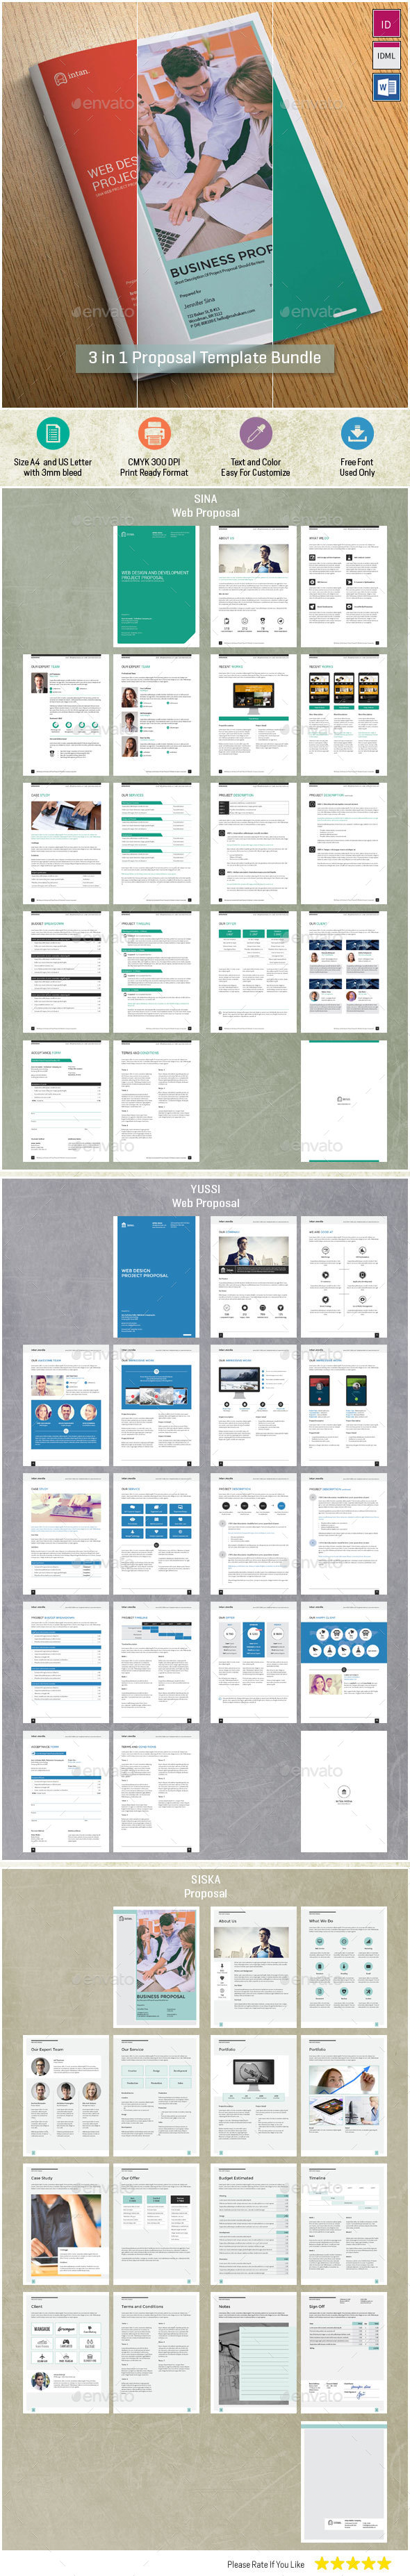 Bundle Vol 2 Proposal Template - Proposals & Invoices Stationery